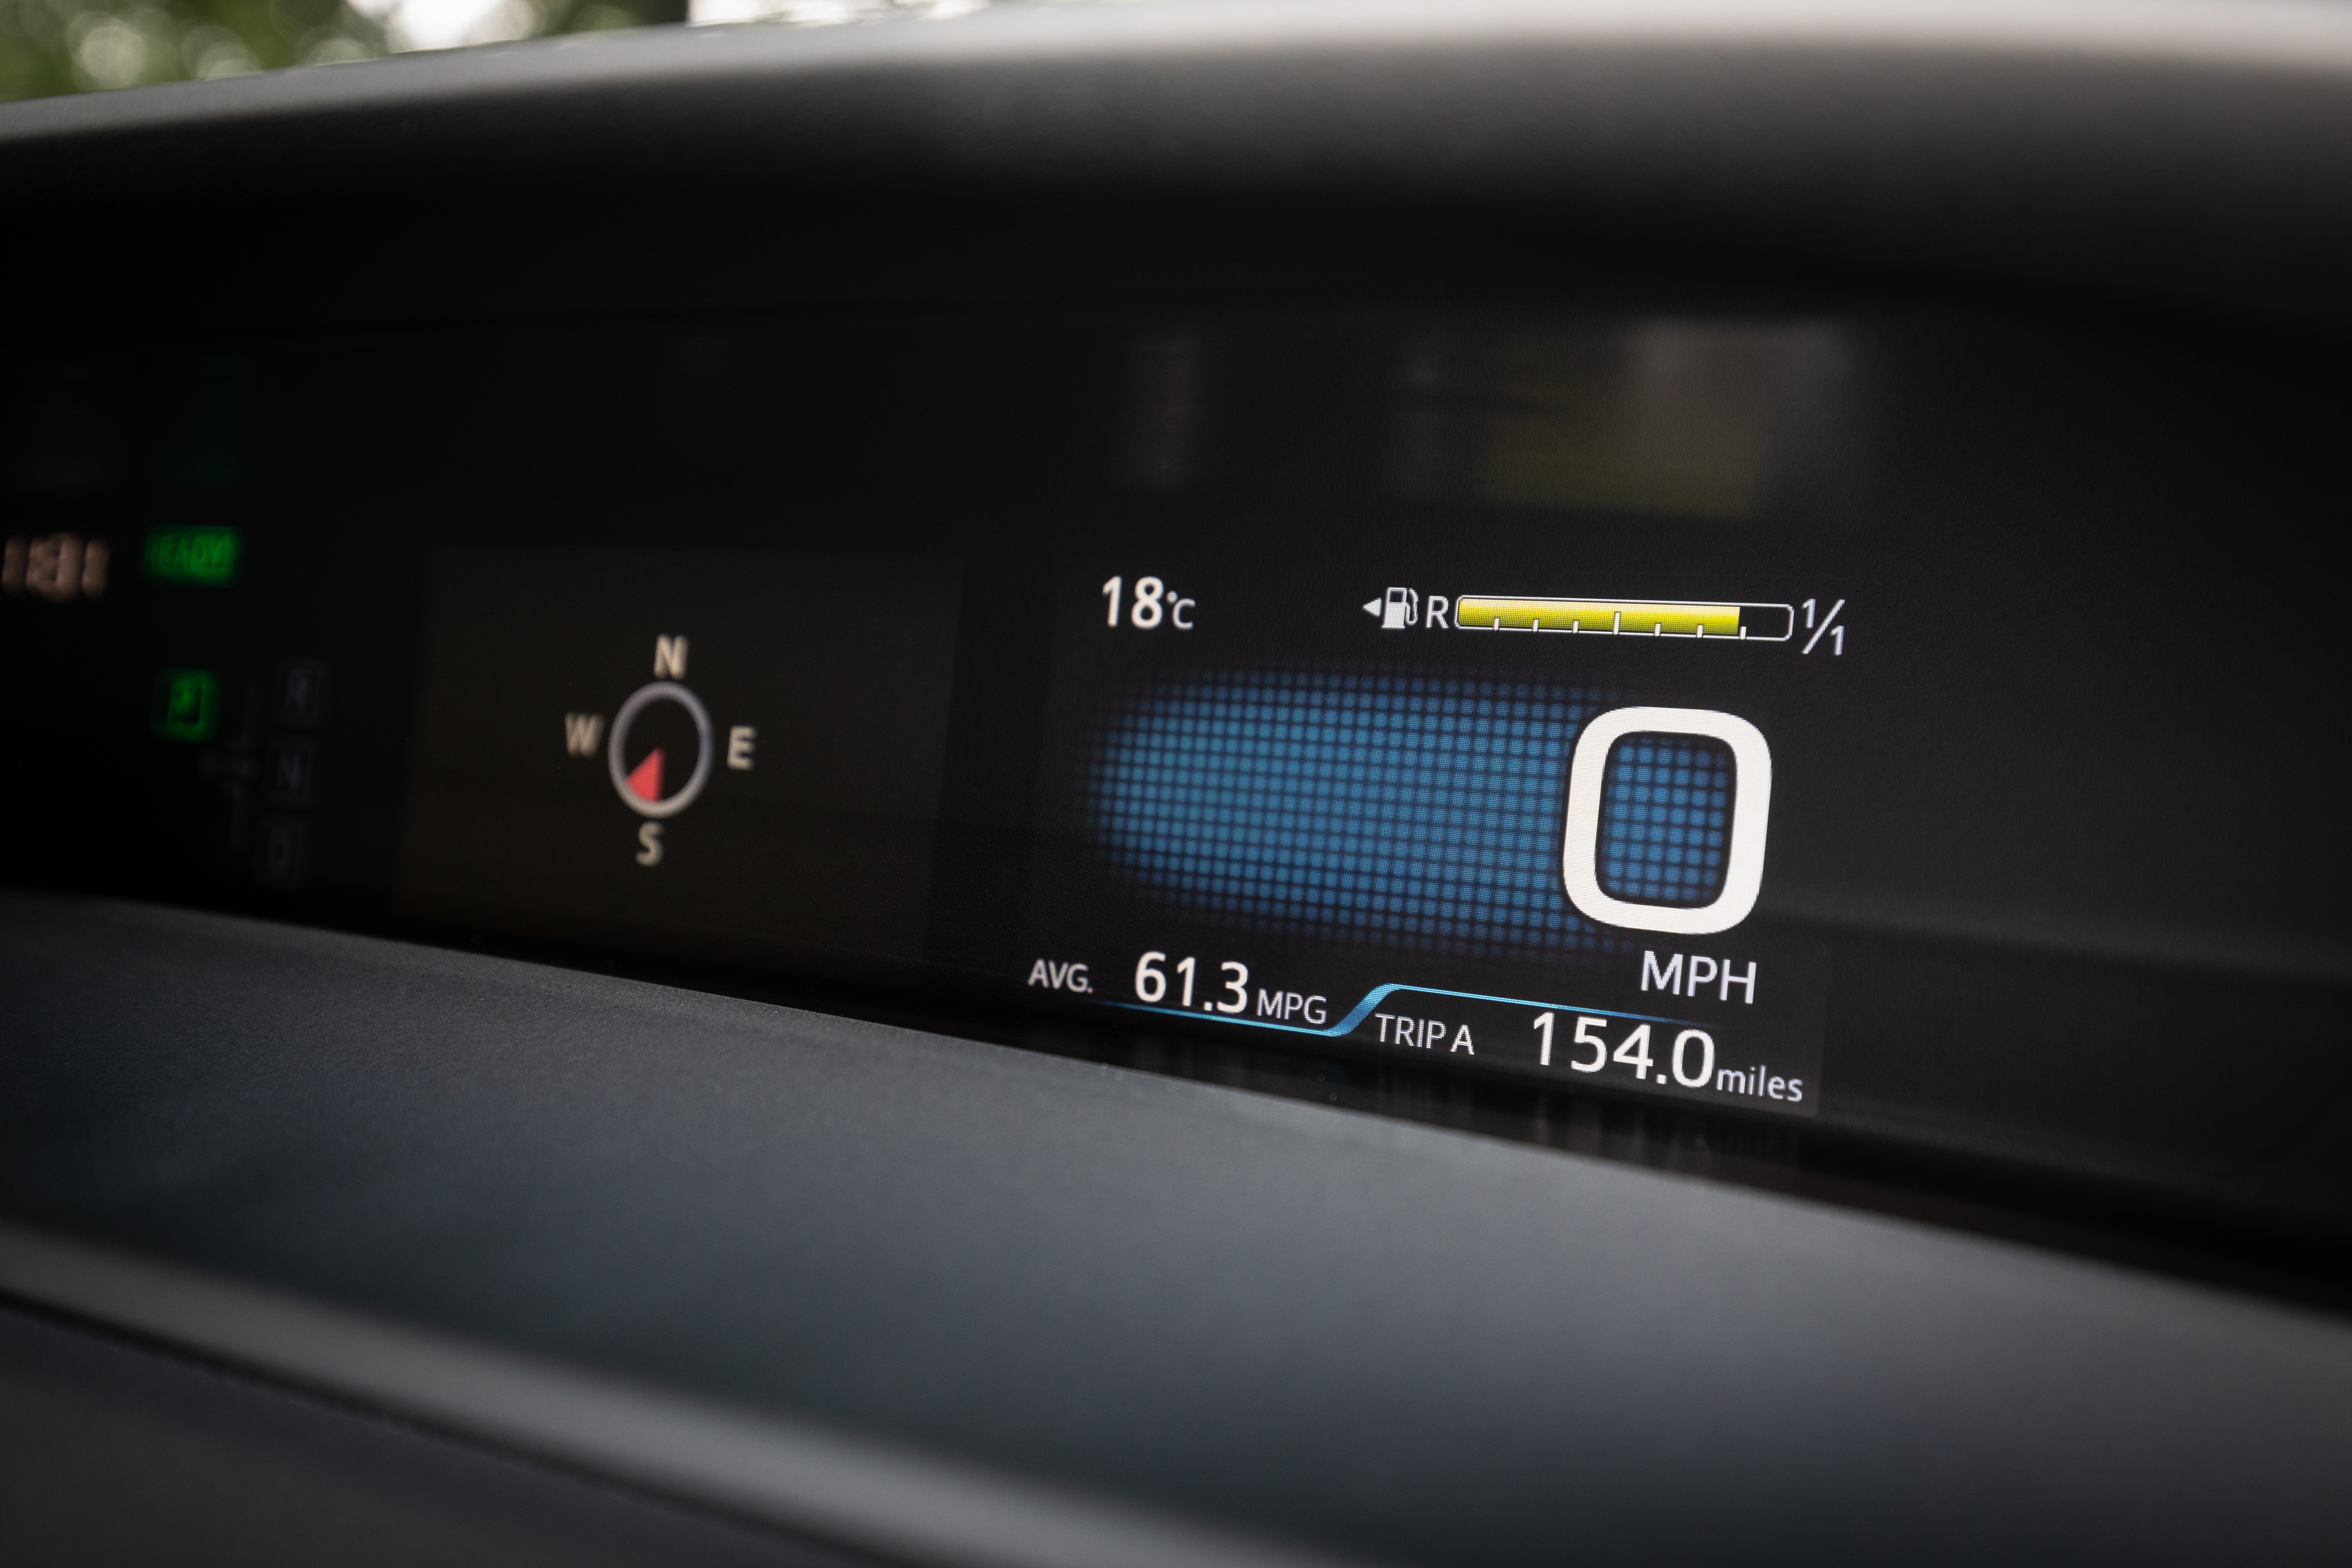 Digital displays are used throughout the cabin